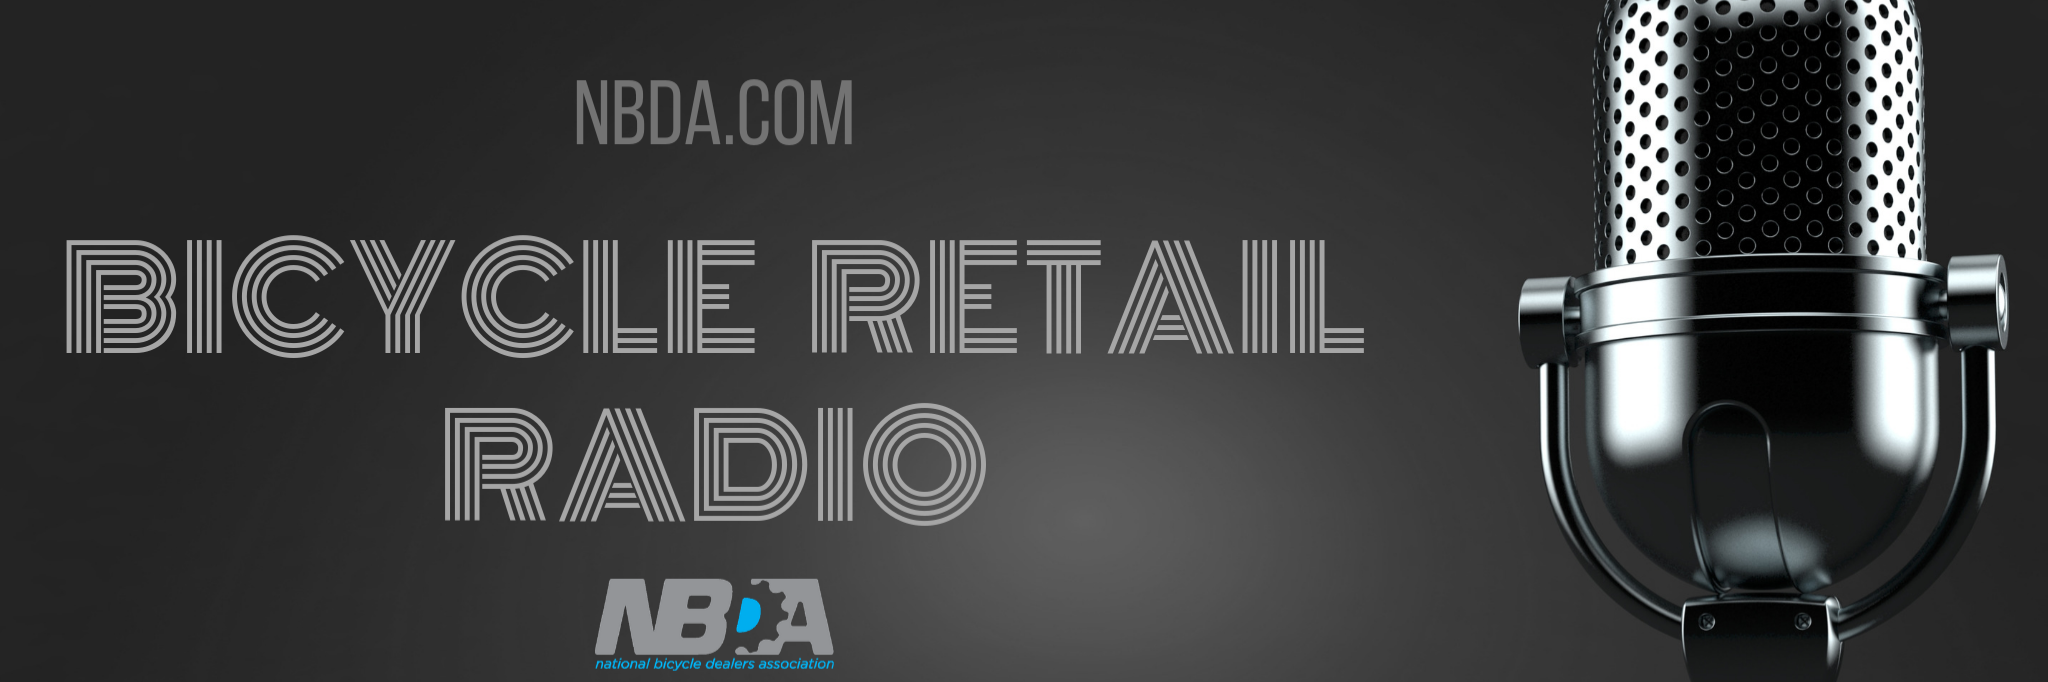 NBDA.com Bicycle Retail Radio